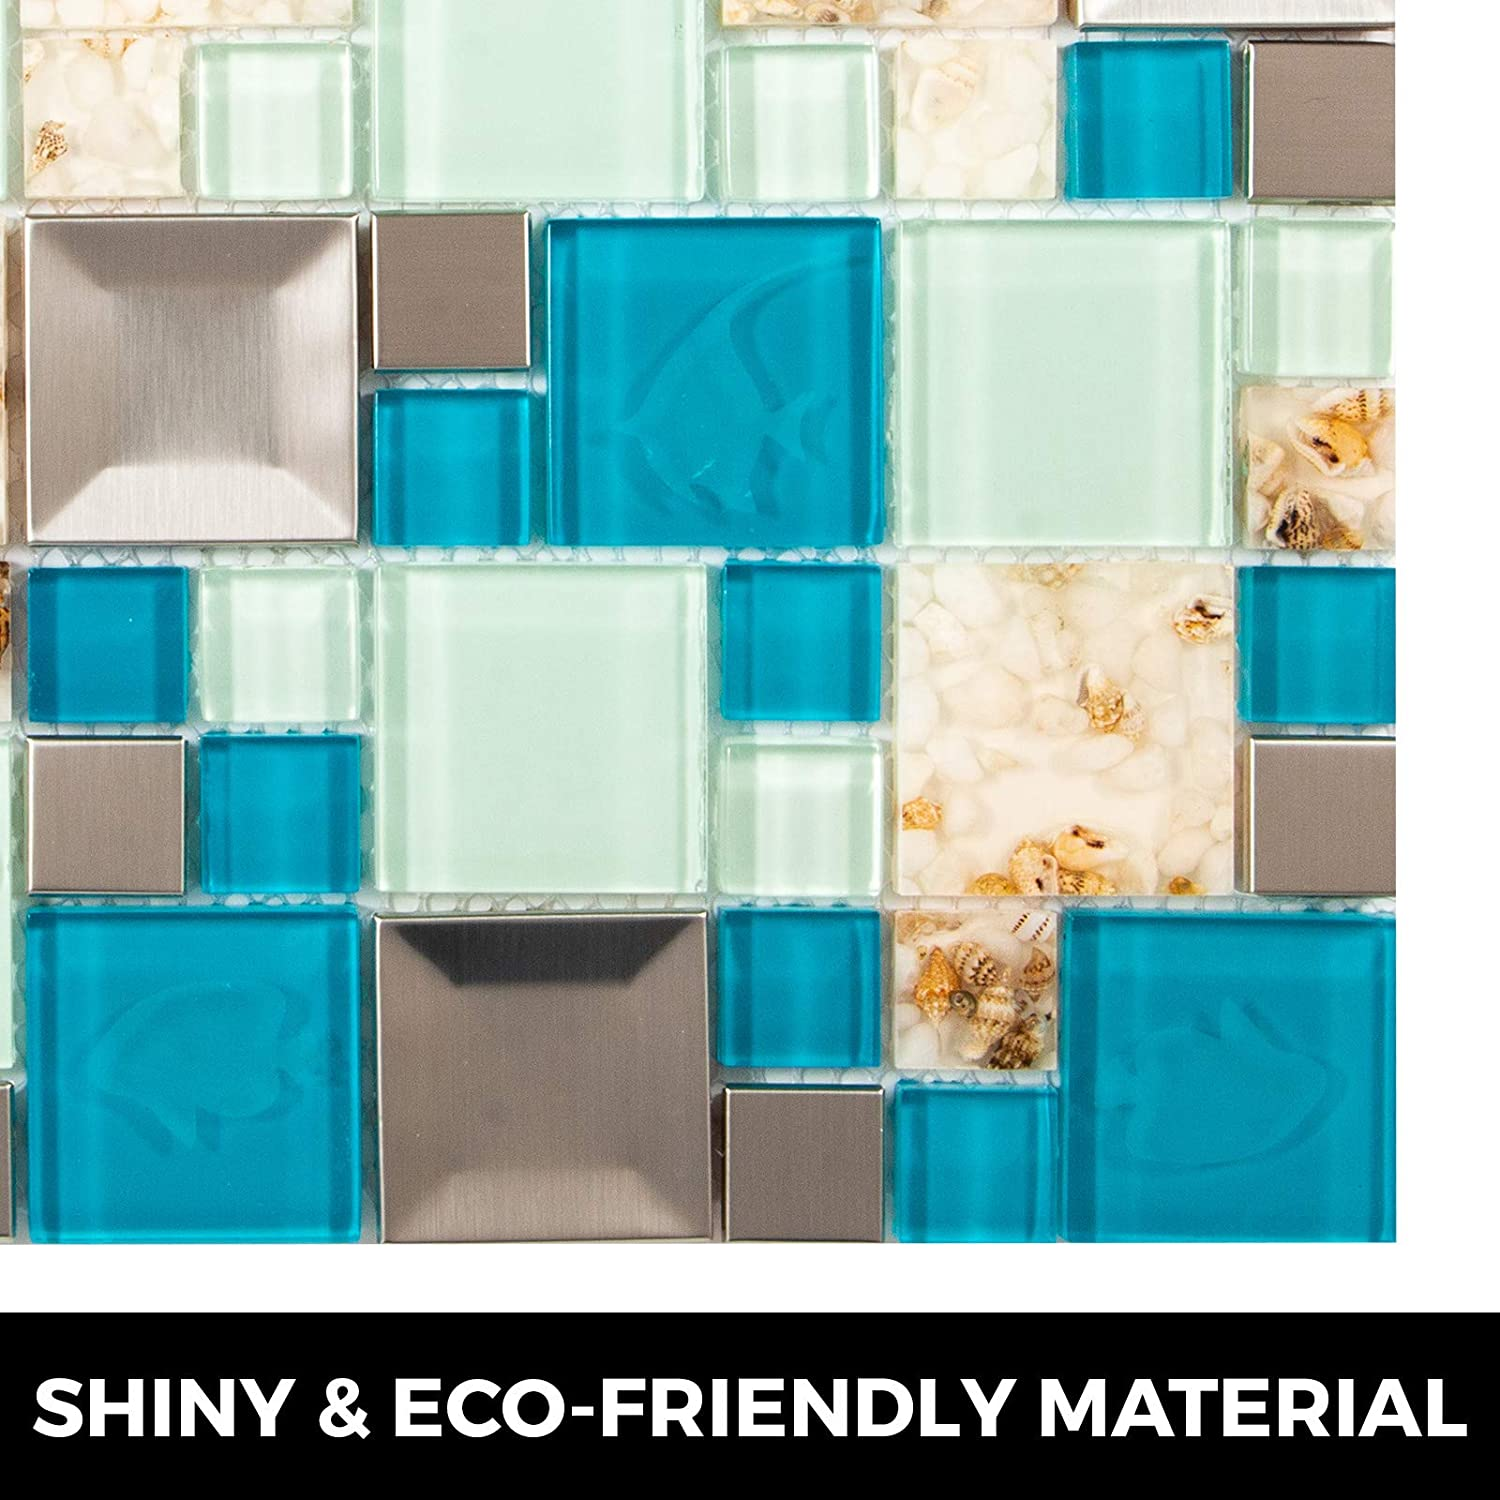 Happybuy Glass Backsplash Tiles for Kitchen 12 Sheets Glass Mosaic Tile Backsplash 12 Inchx12 Inch Glass Tiles for Backsplash 12 SqFt for Kitchen Bathroom backsplash